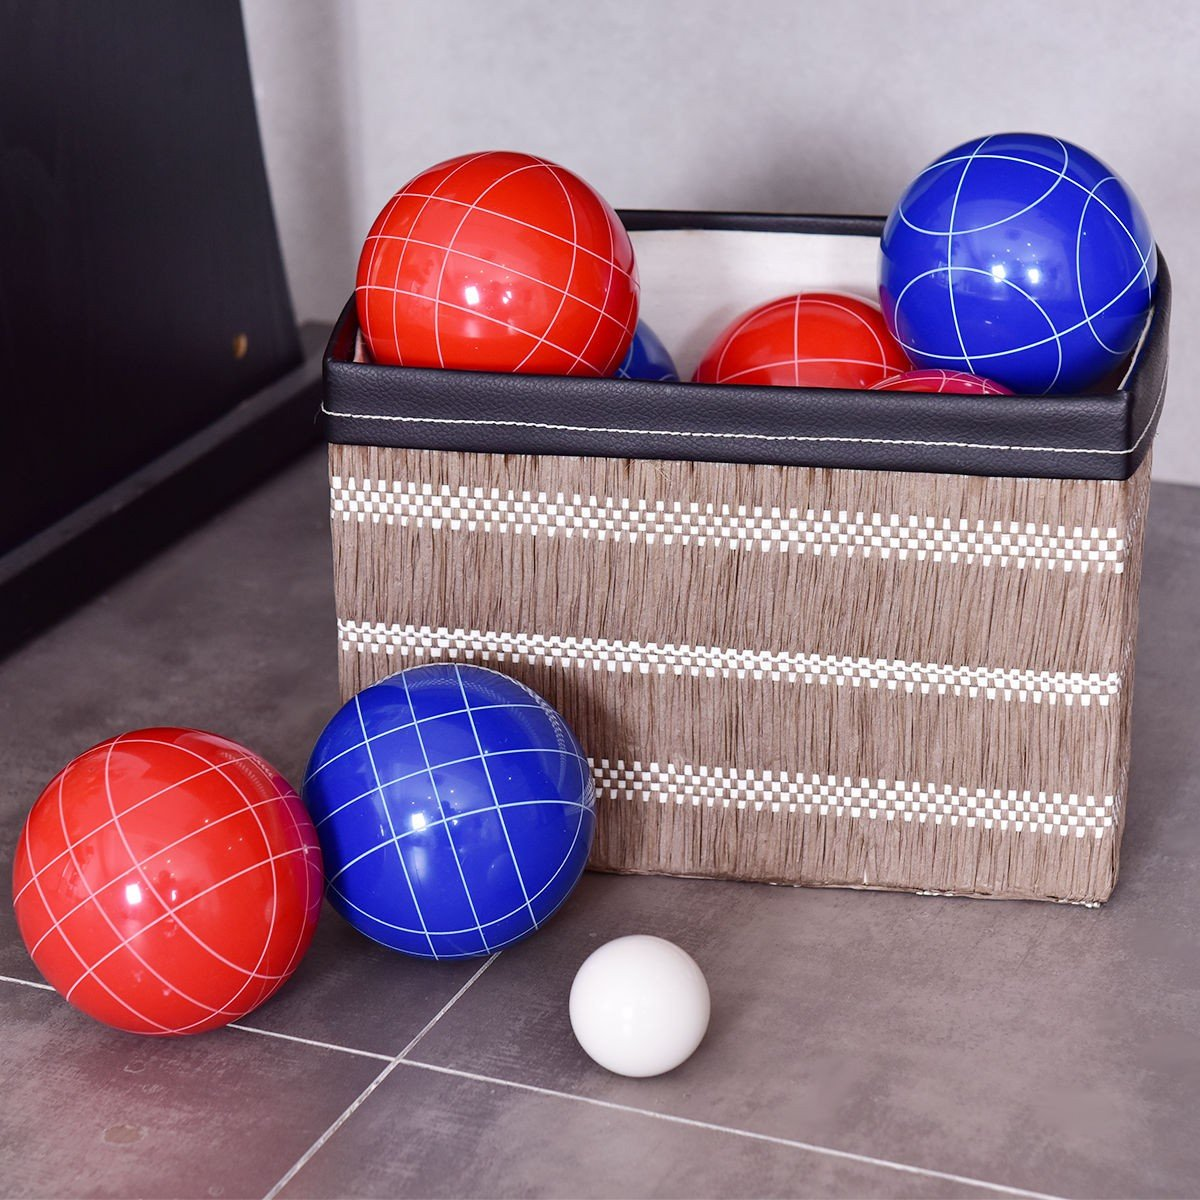 MD Group Bocce Set Backyard Ball Multi-color Resin Outdoor Game Case Lawn Balls